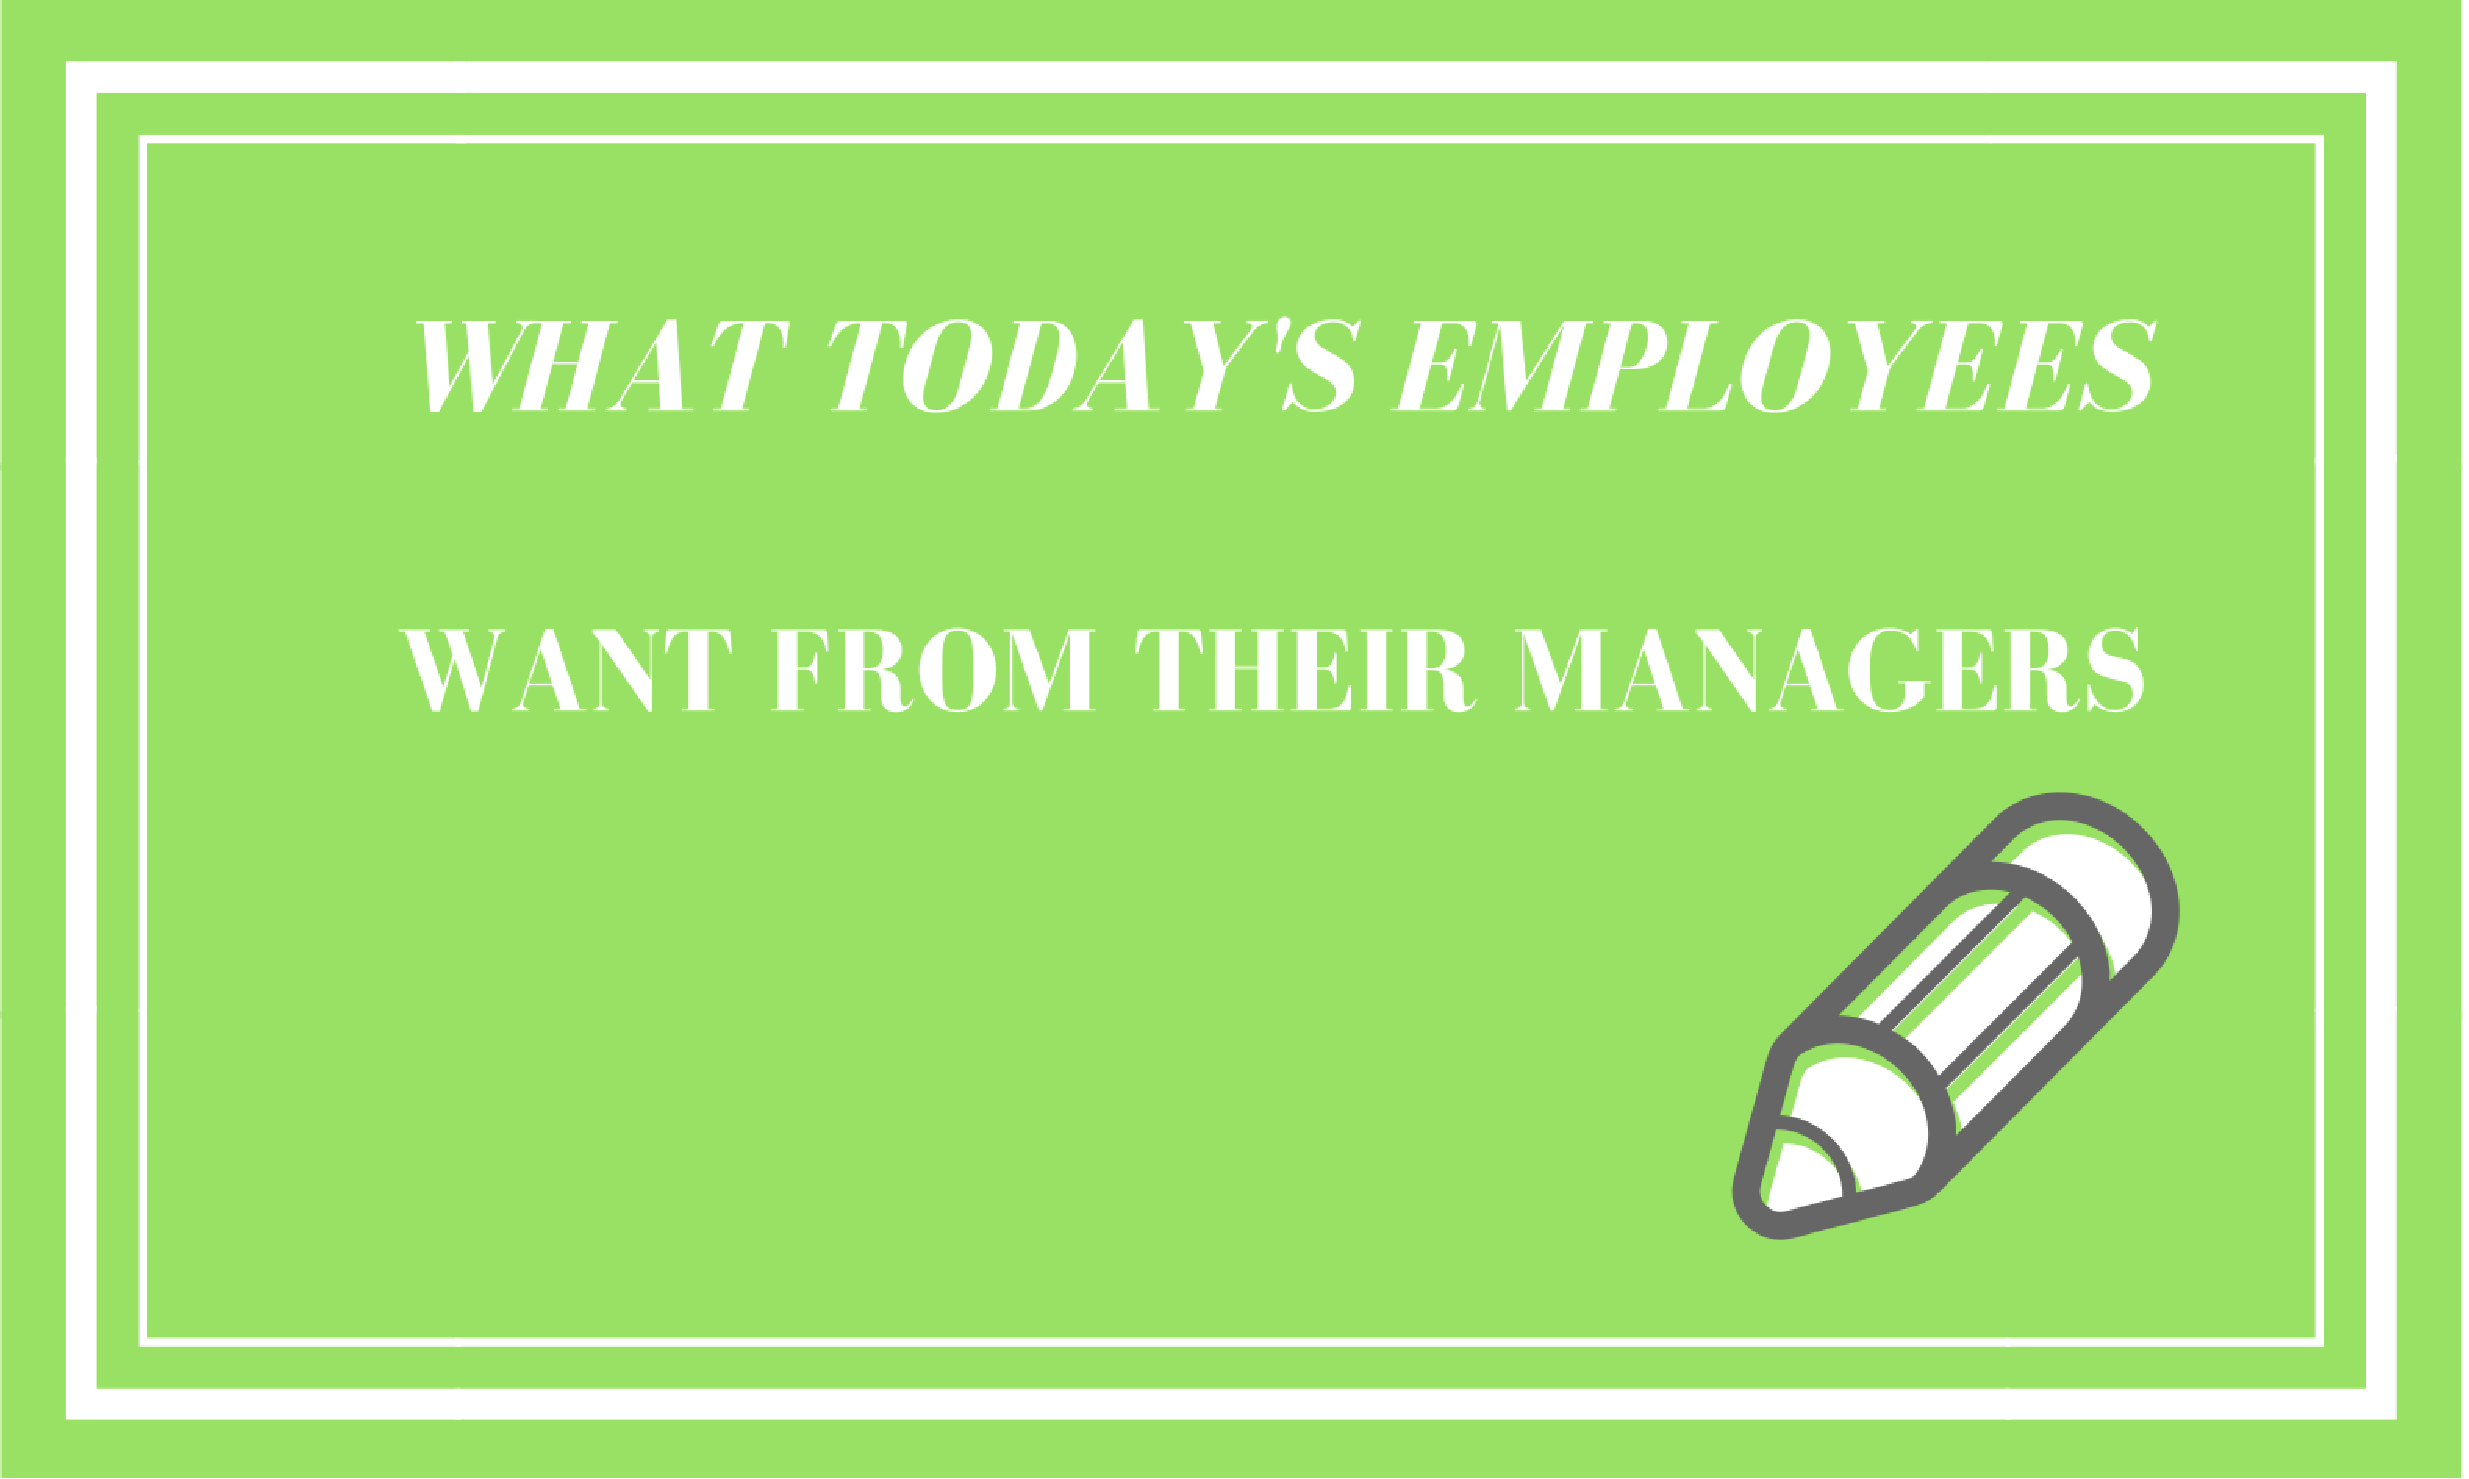 What Today's Employees Want From Their Managers